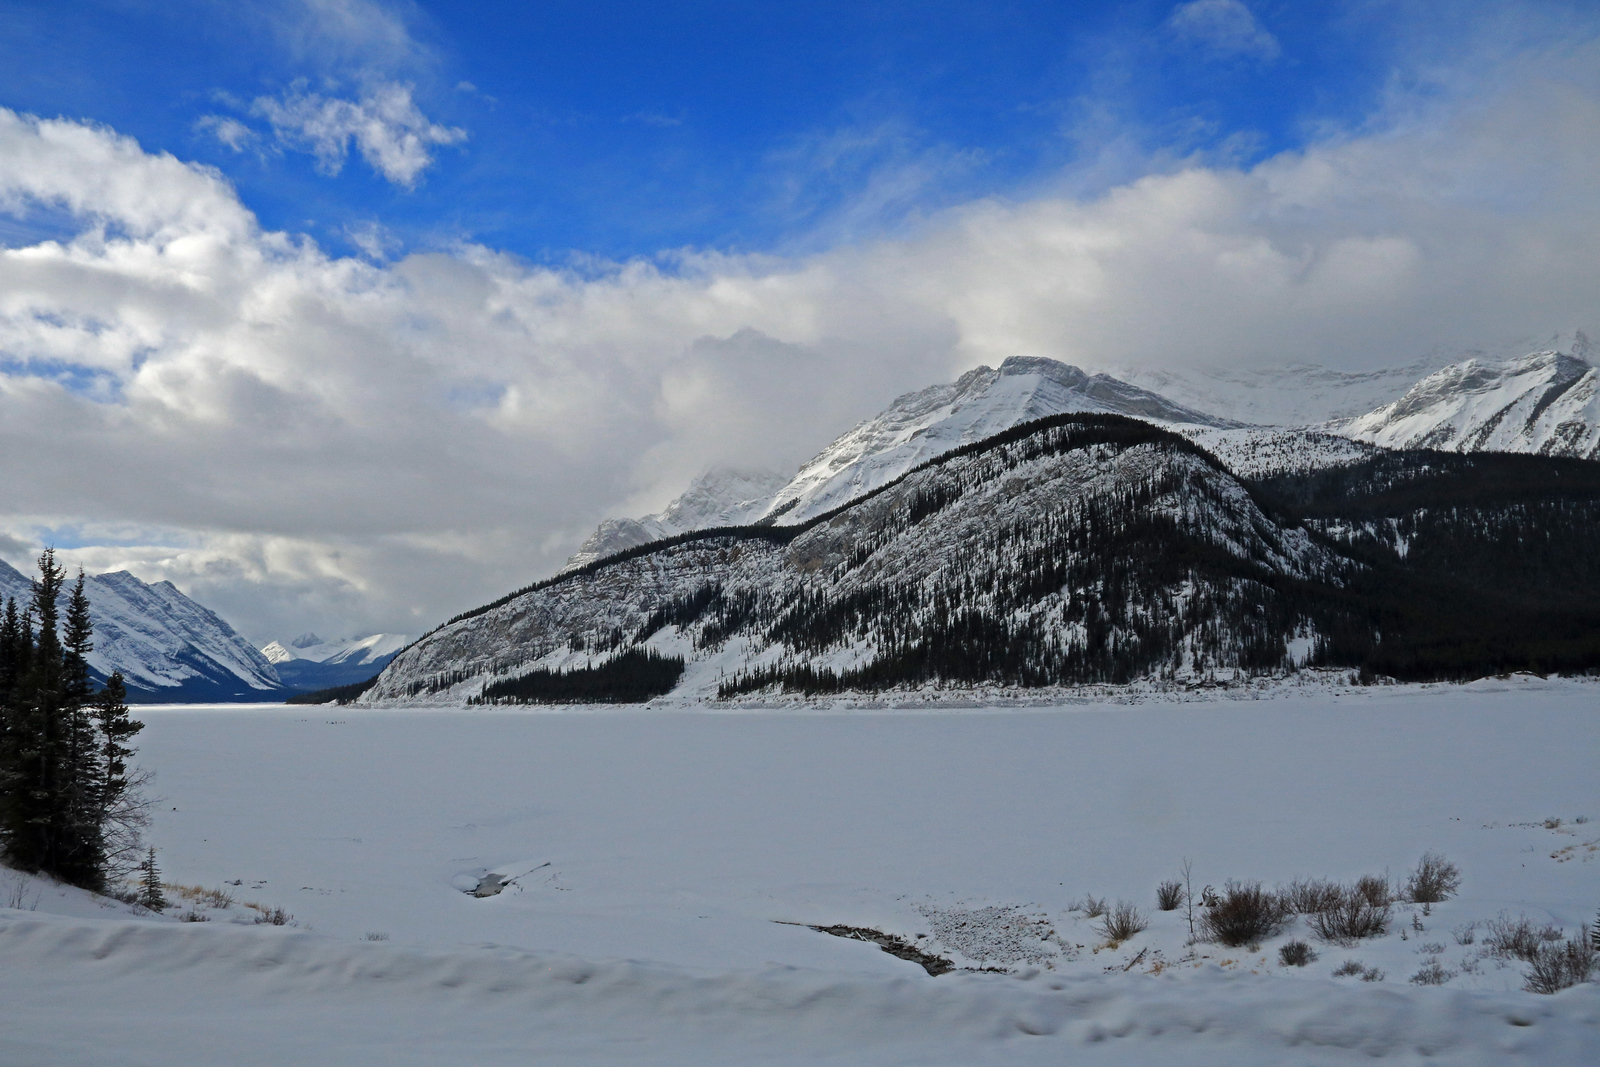 The Spray Lakes along the road on the way to Rummel Lake.